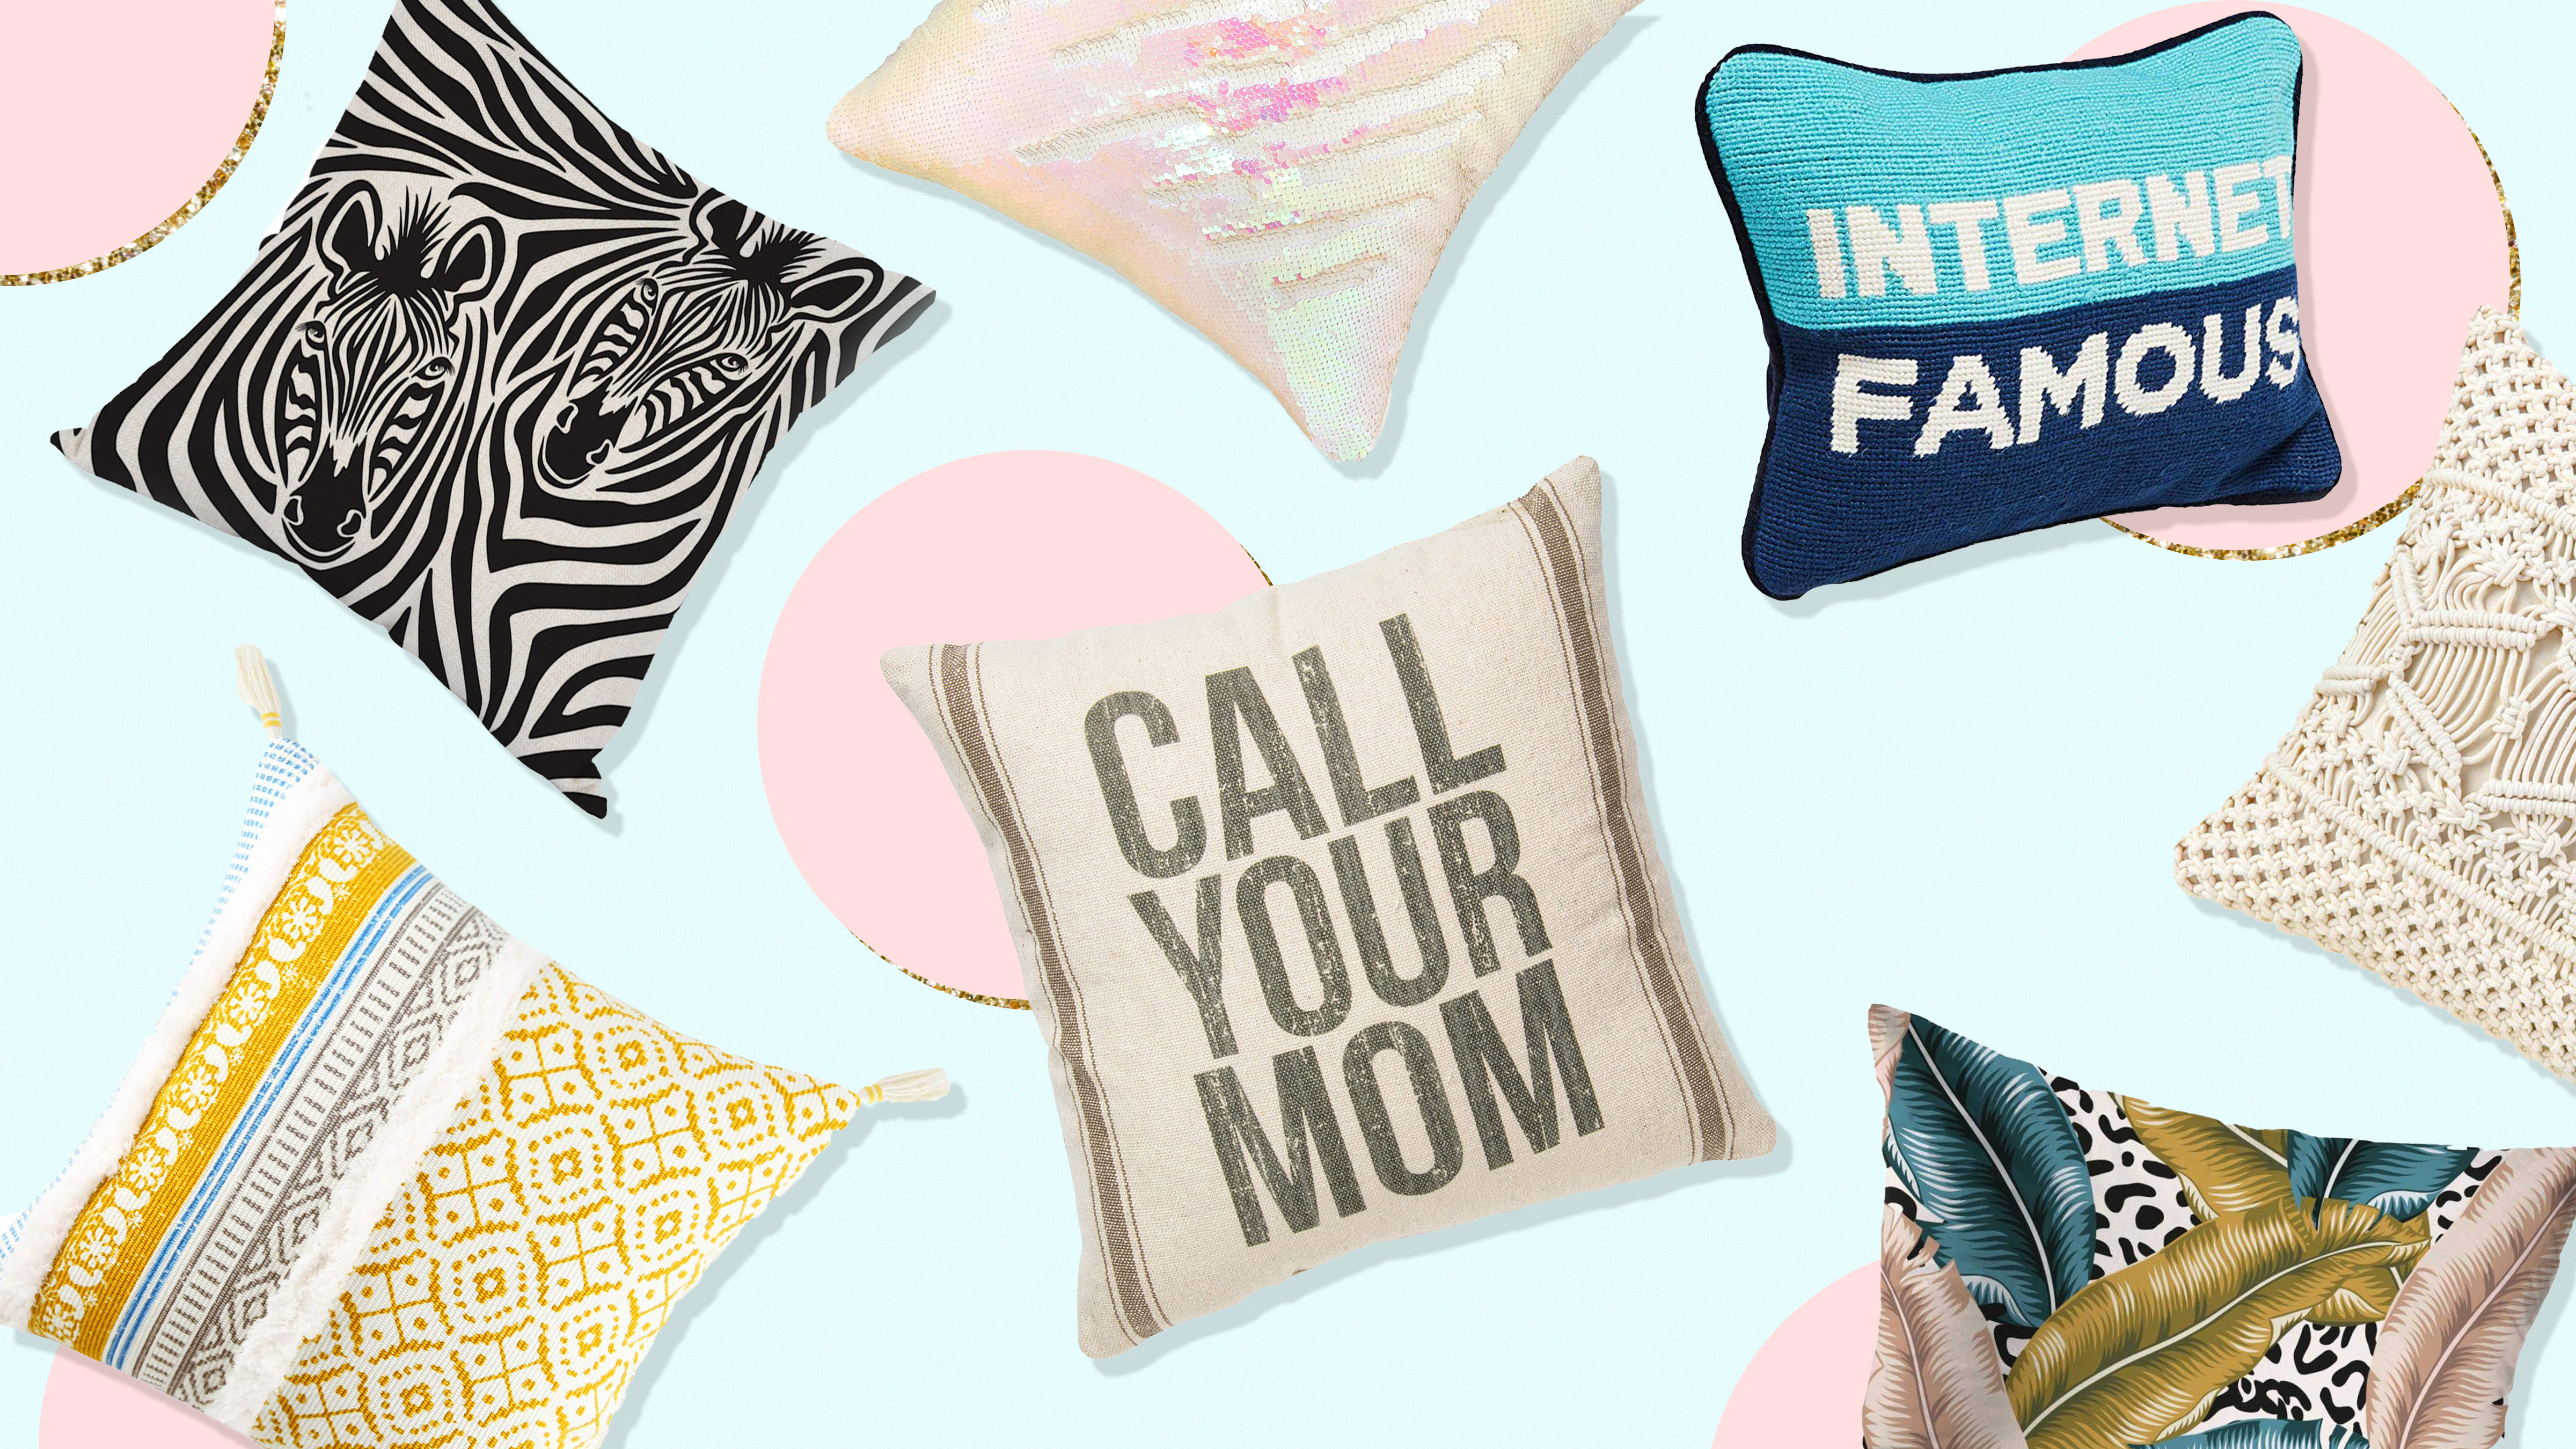 20 Throw Pillows From Amazon To Jazz Up Your Space For 30 Under Stylecaster